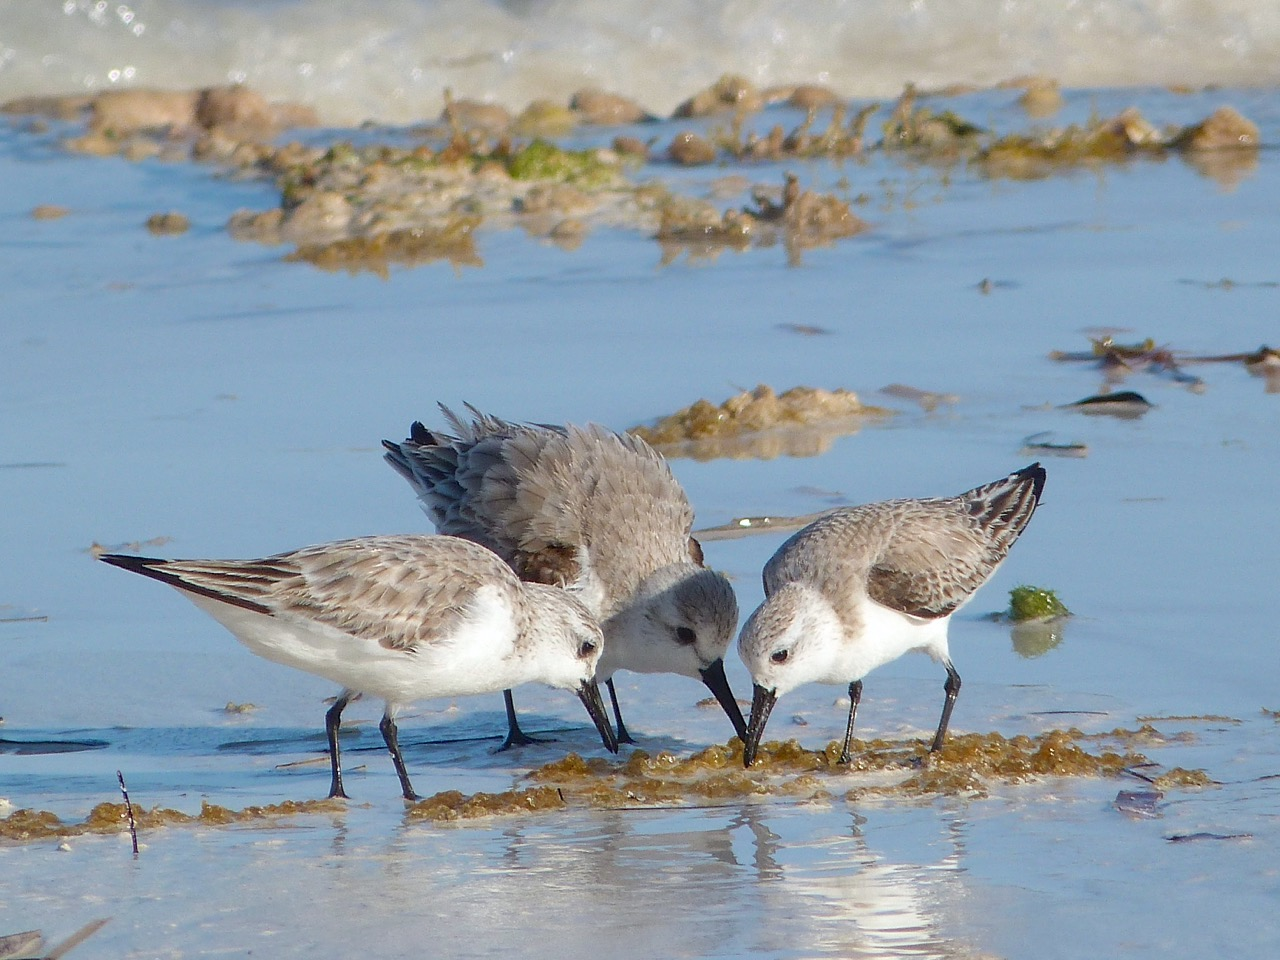 Sanderlings on Delphi Beach, Abaco, Bahamas (Keith Salvesen)